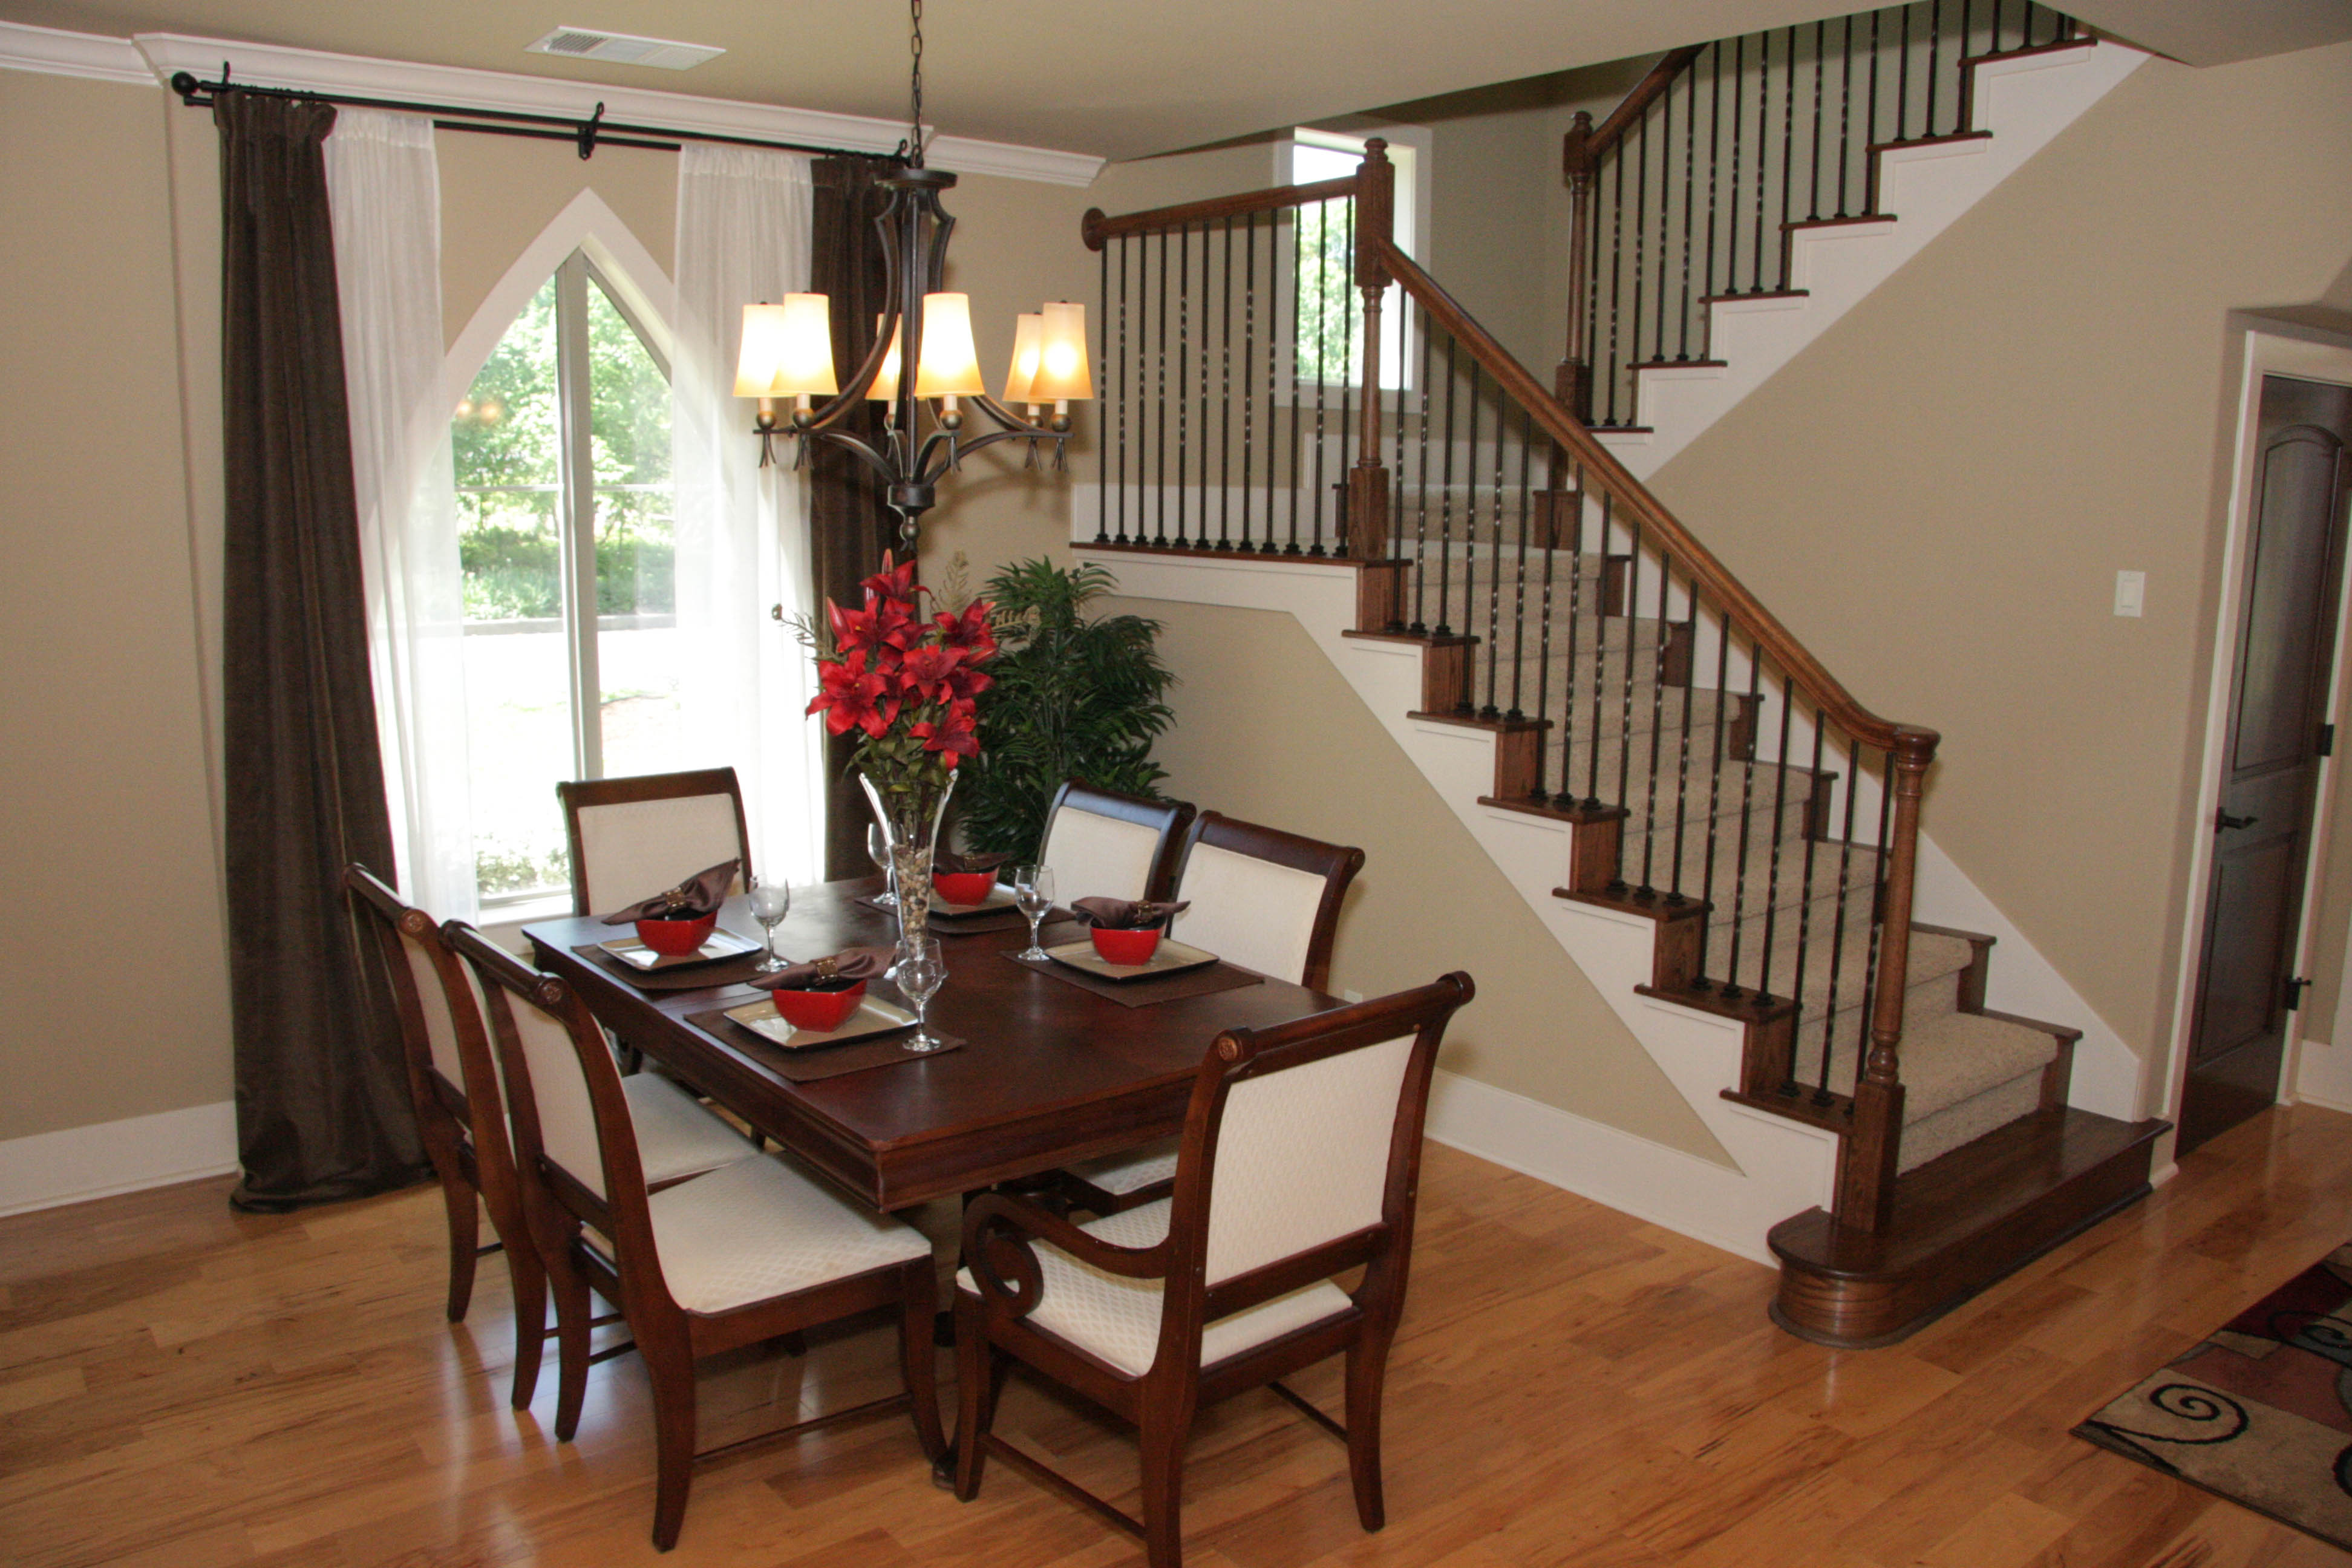 staged dining room for home sale